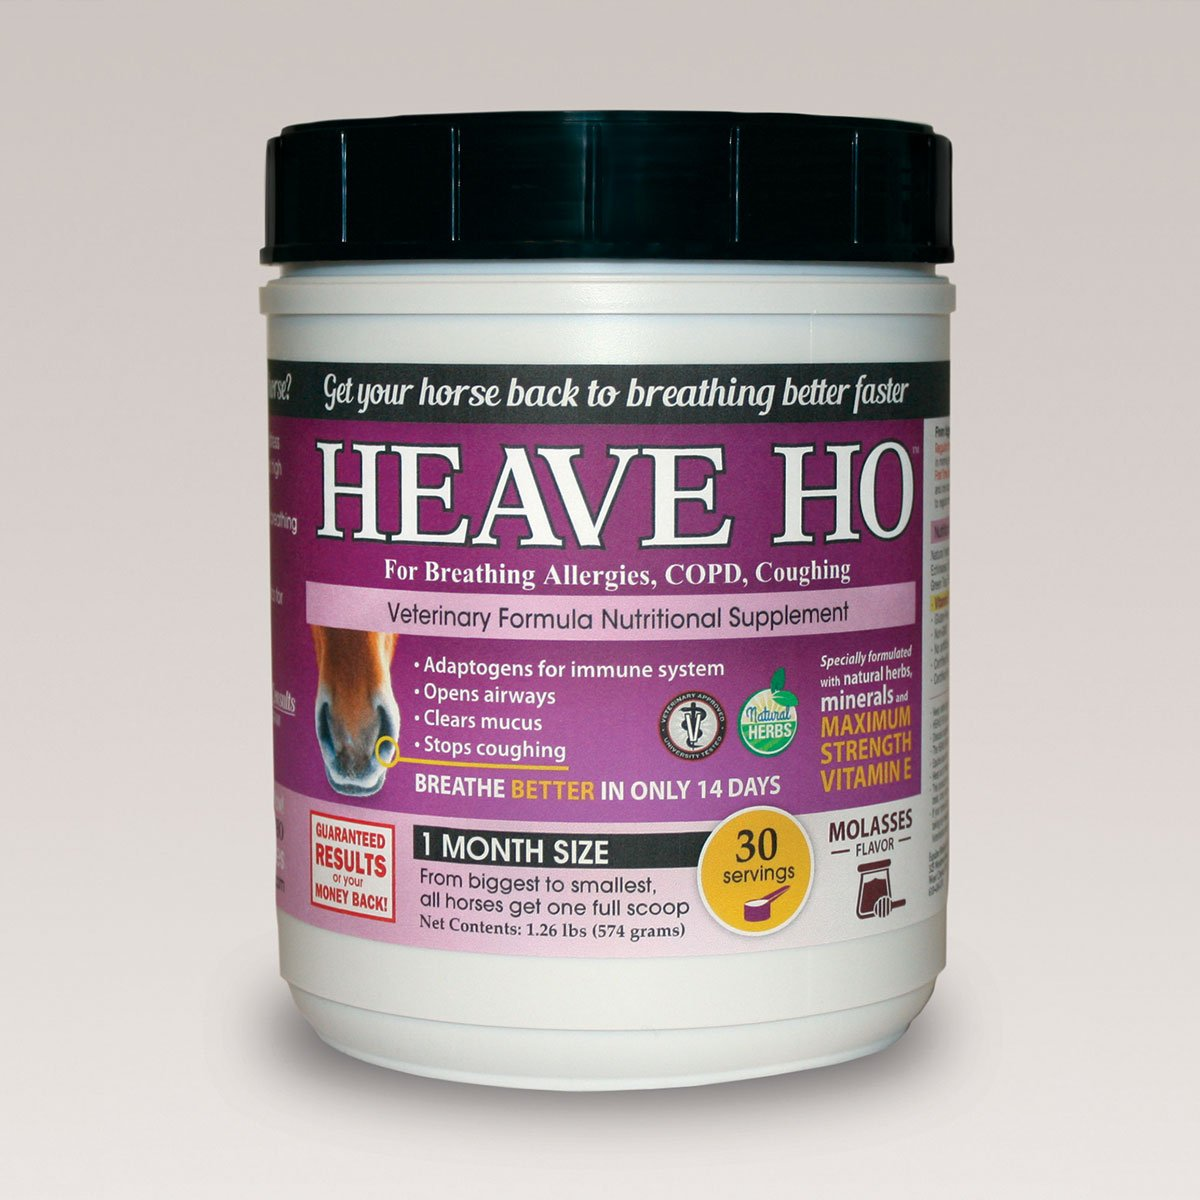 Equine Medical and Surgical Heave Ho Supplement 30 Servings Molasses by Equine Medical and Surgical